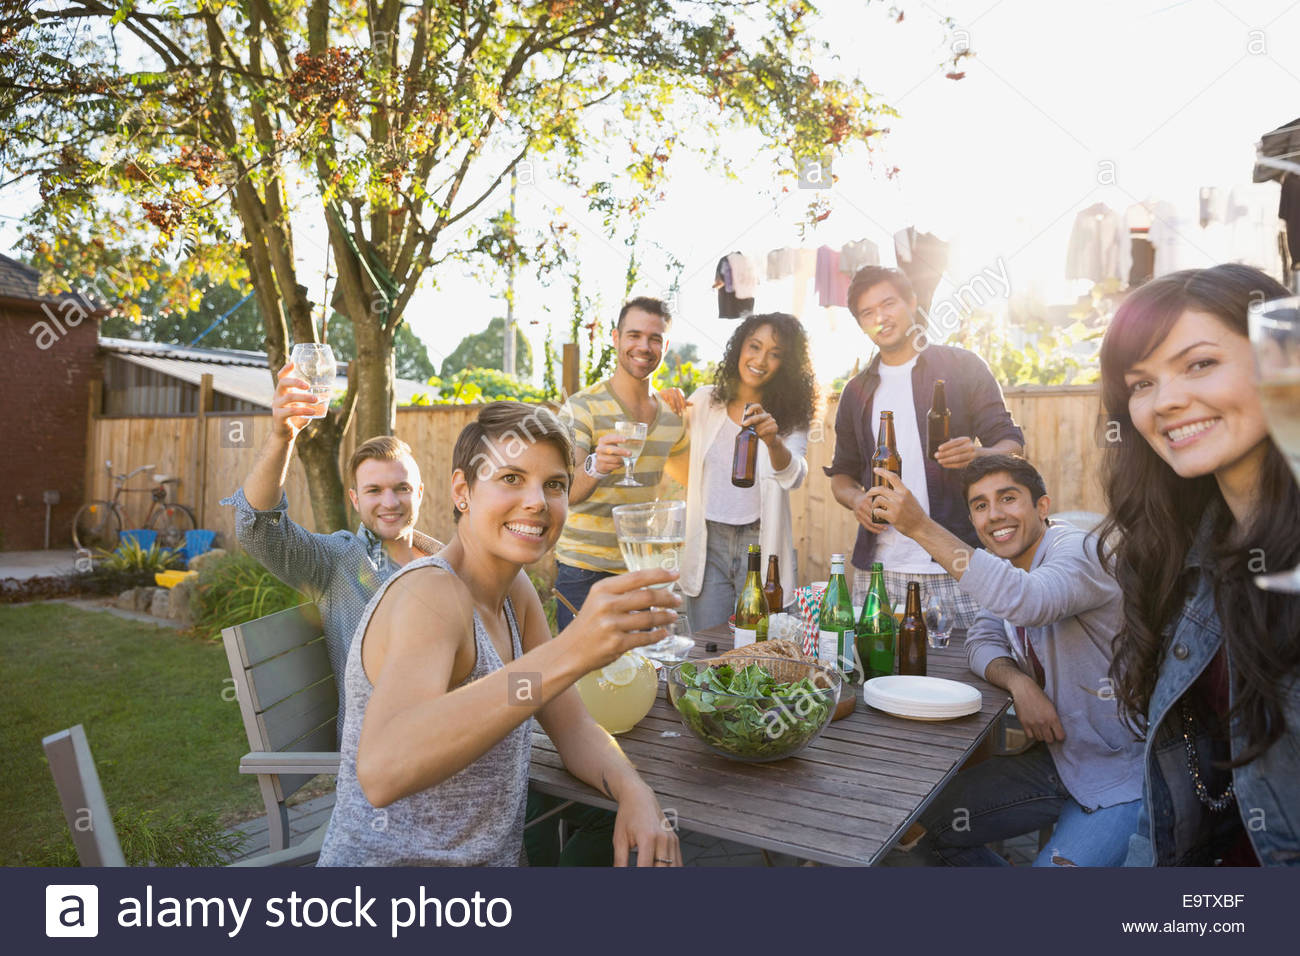 Portrait of friends toasting drinks at backyard barbecue - Stock Image